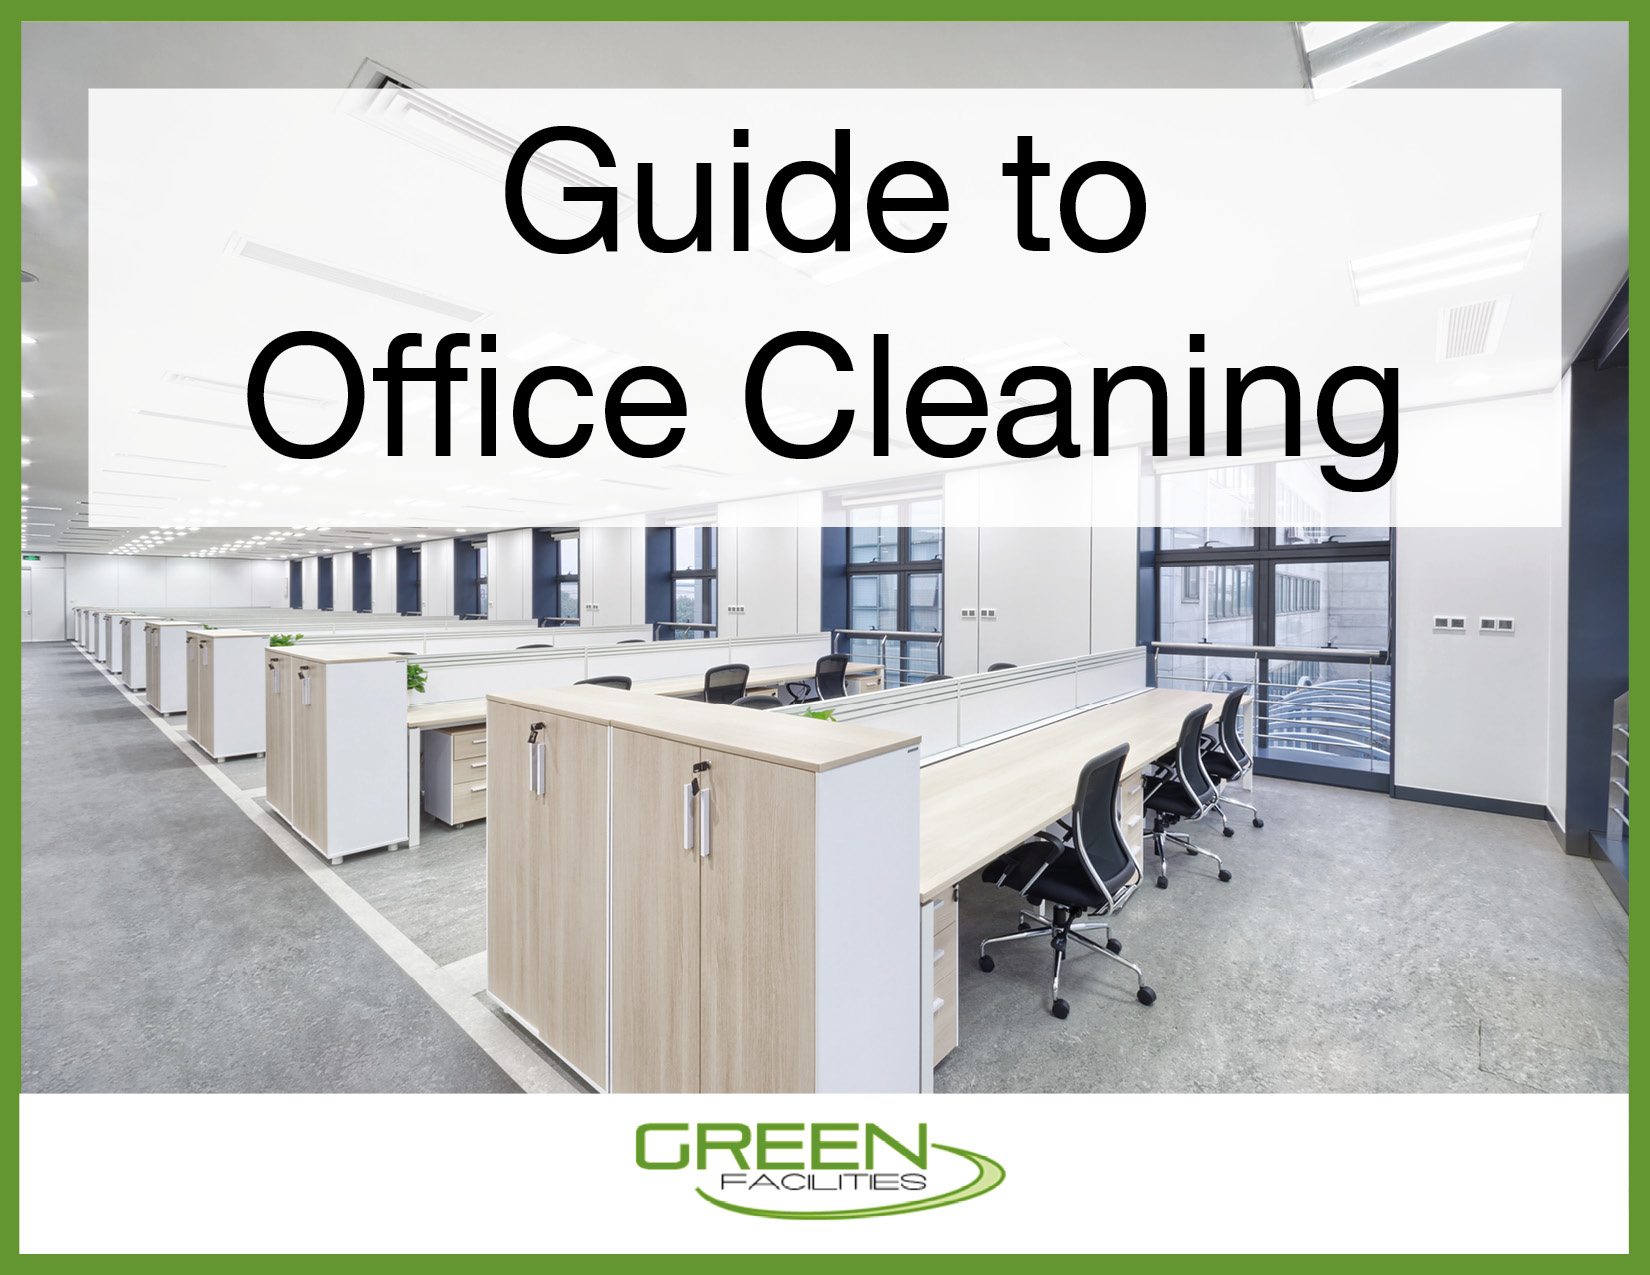 Complete Guide to Office Cleaning